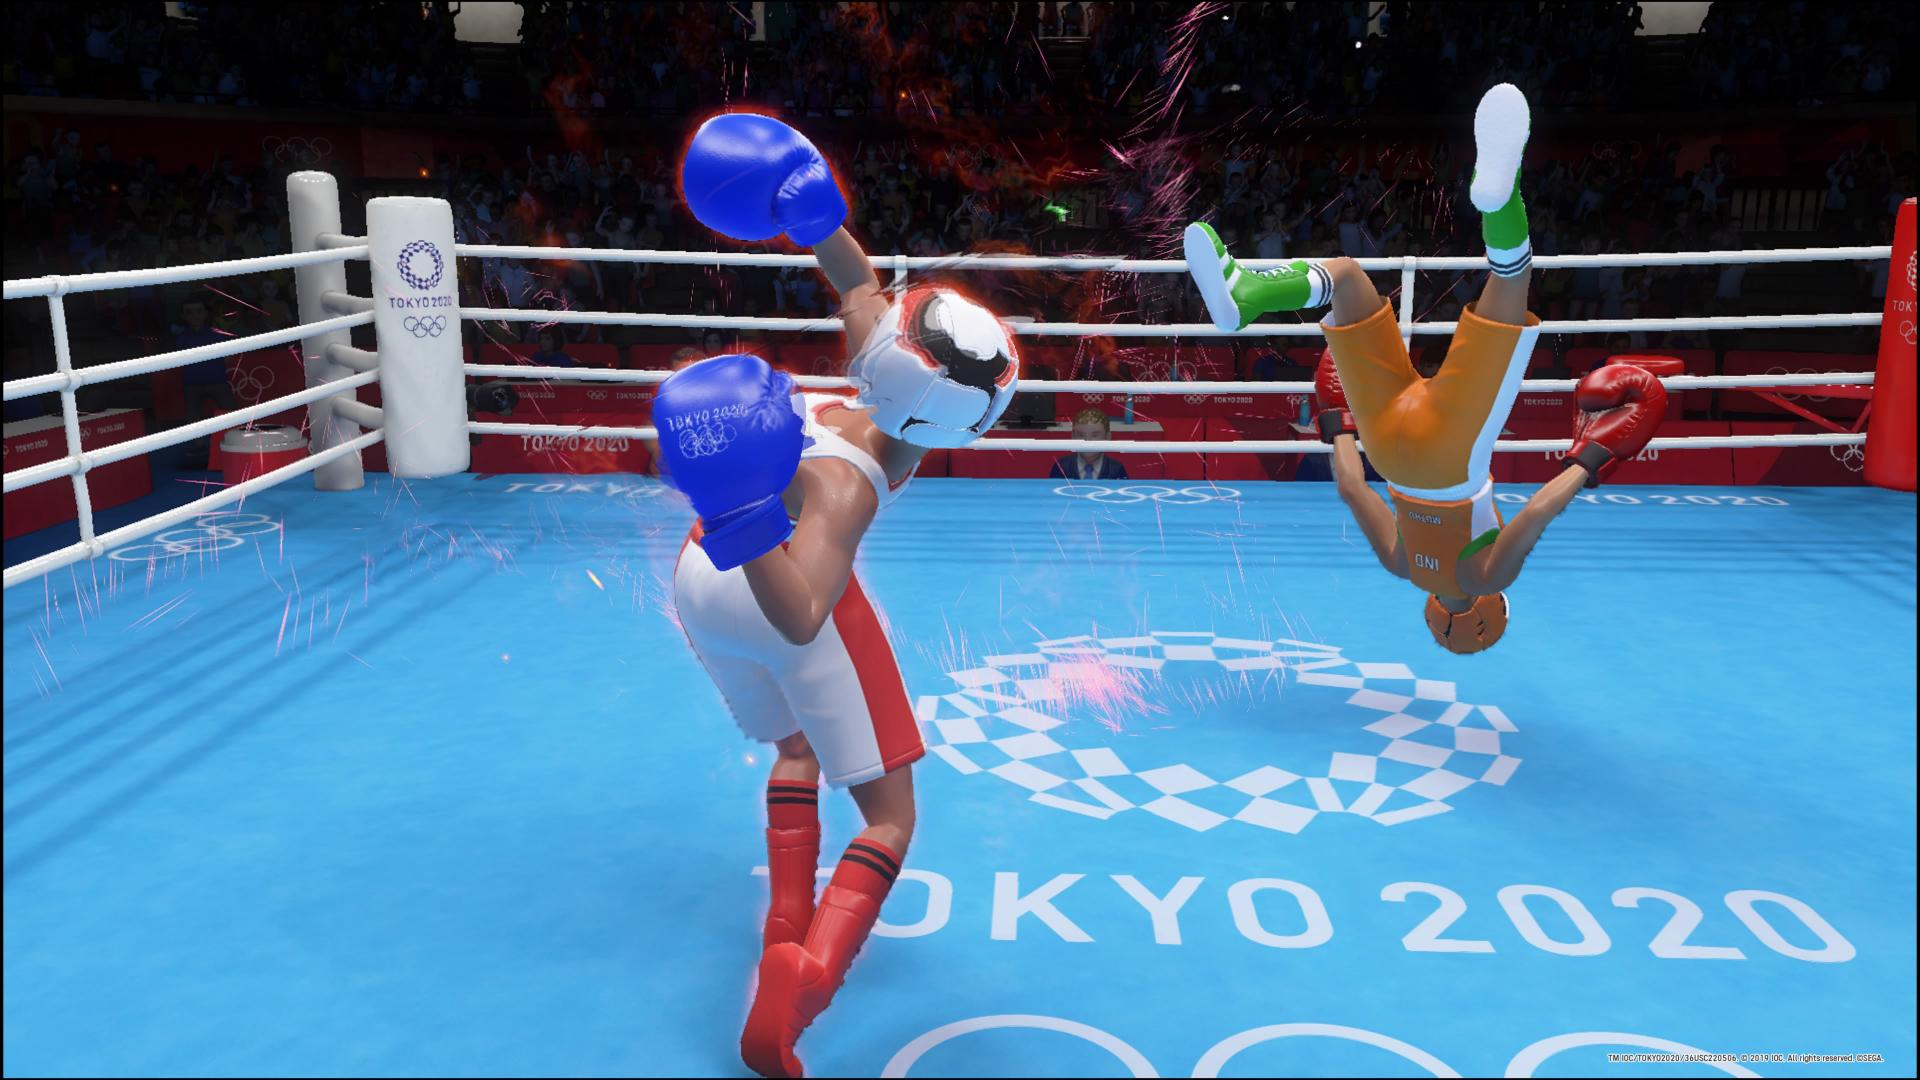 Olympic Games Tokyo 2020: The Official Video Game – recenzja i opinia o grze. Boks